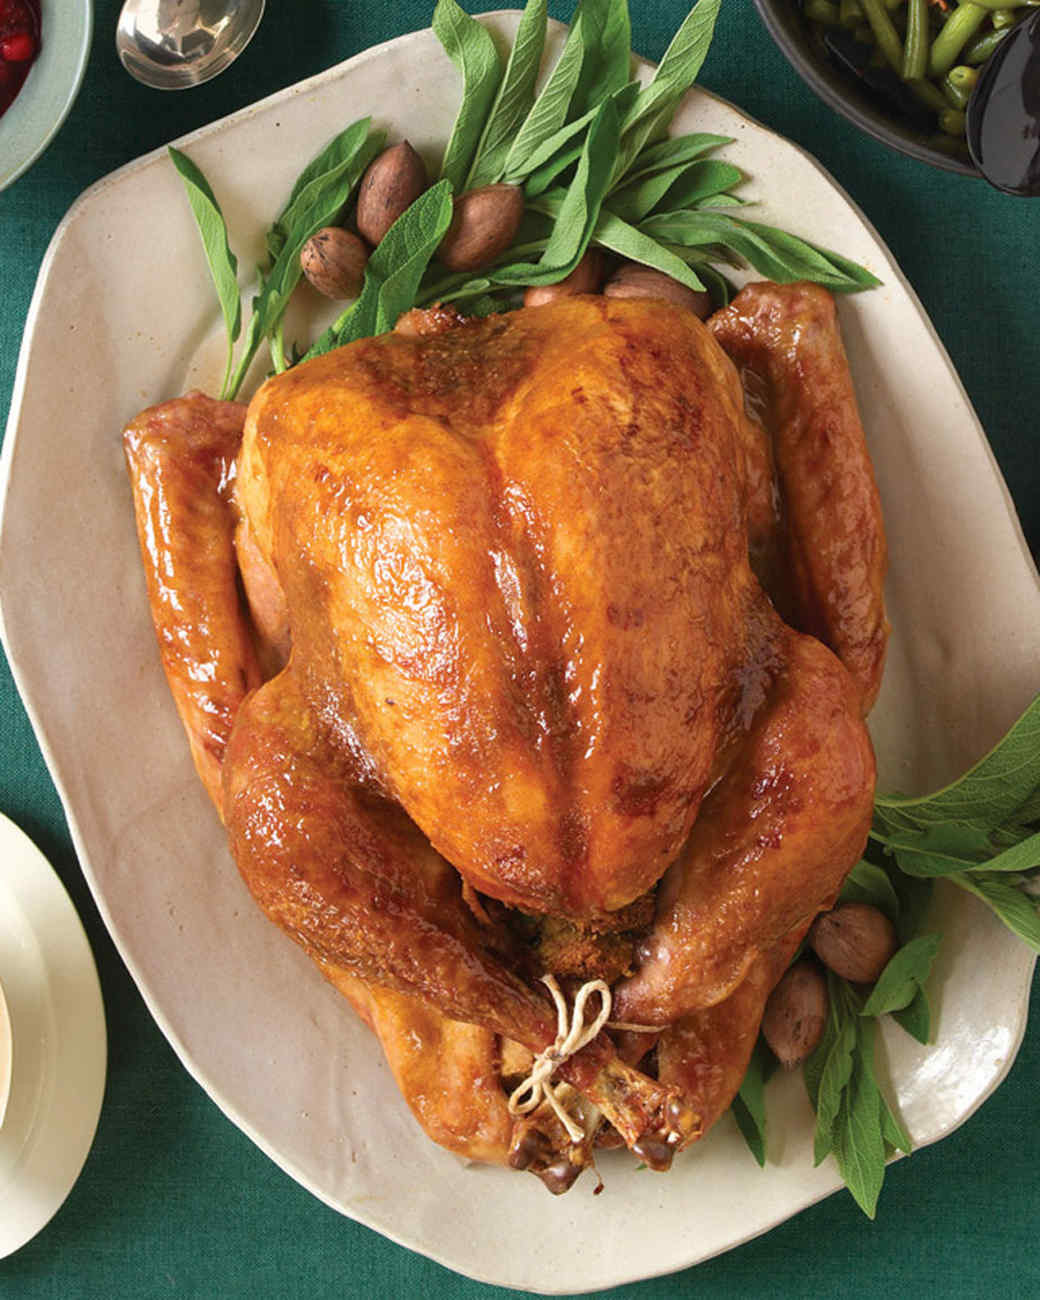 Thanksgiving Ham Glaze Recipes  Roast Turkey with Brown Sugar and Mustard Glaze Recipe